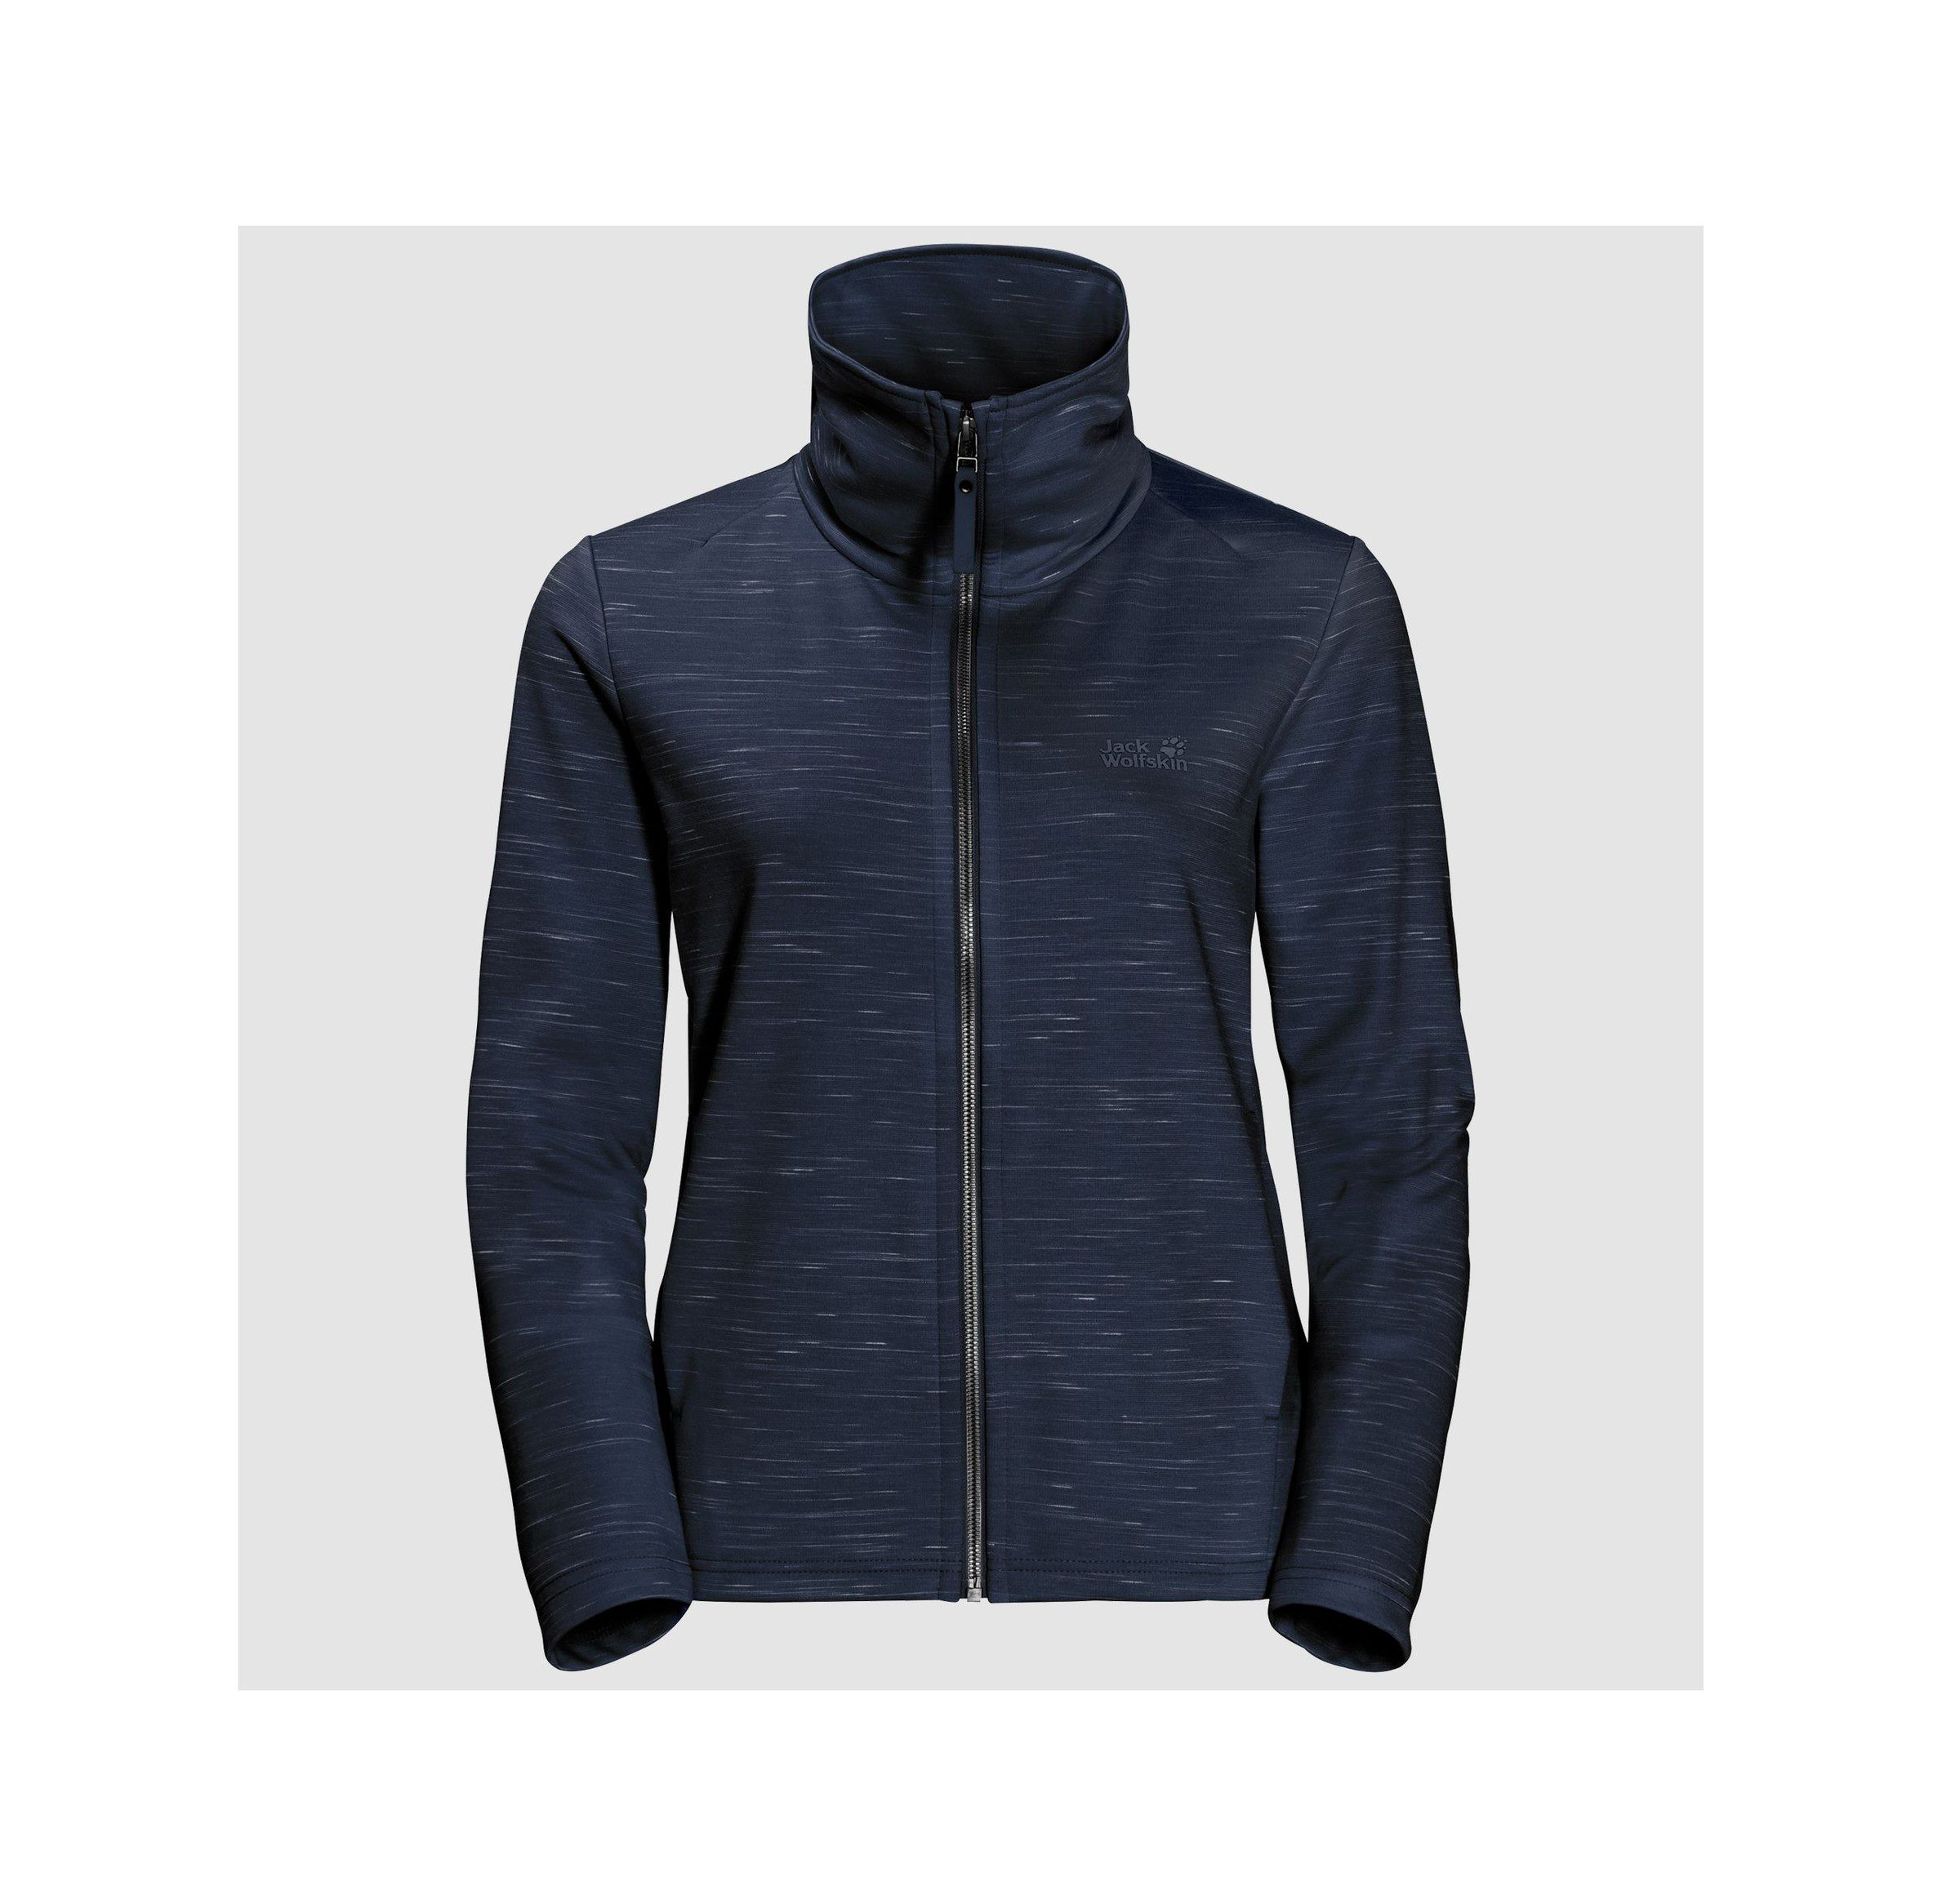 Jack Wolfskin Women's Oceanside Jacket - Midnight blue